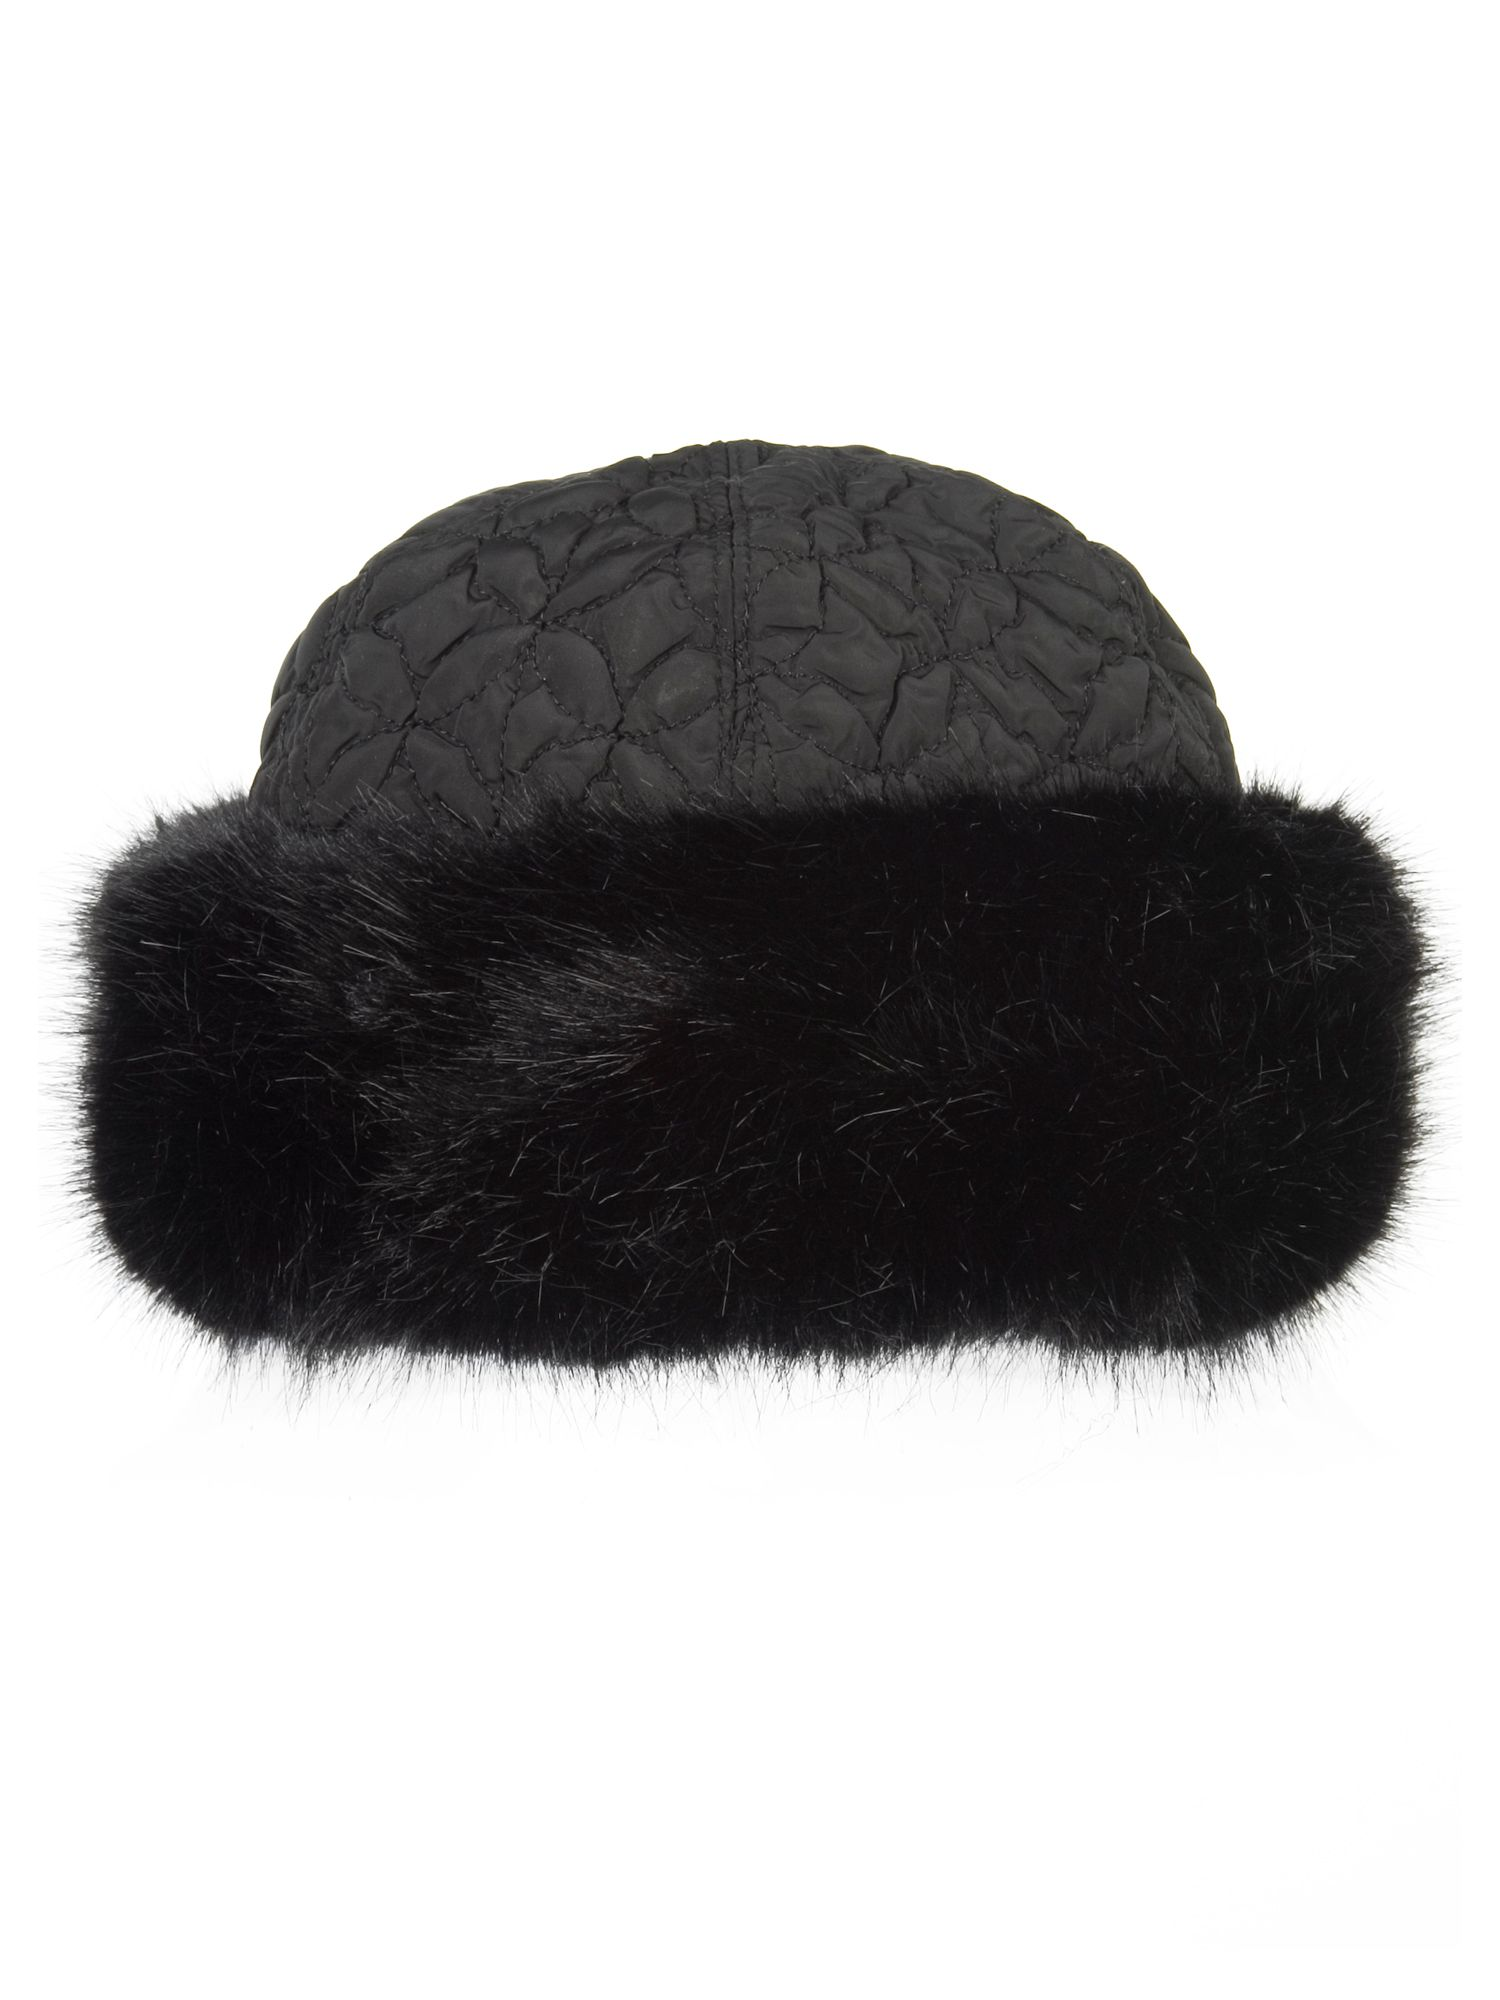 Chesca Black faux fur trim quilted hat Black